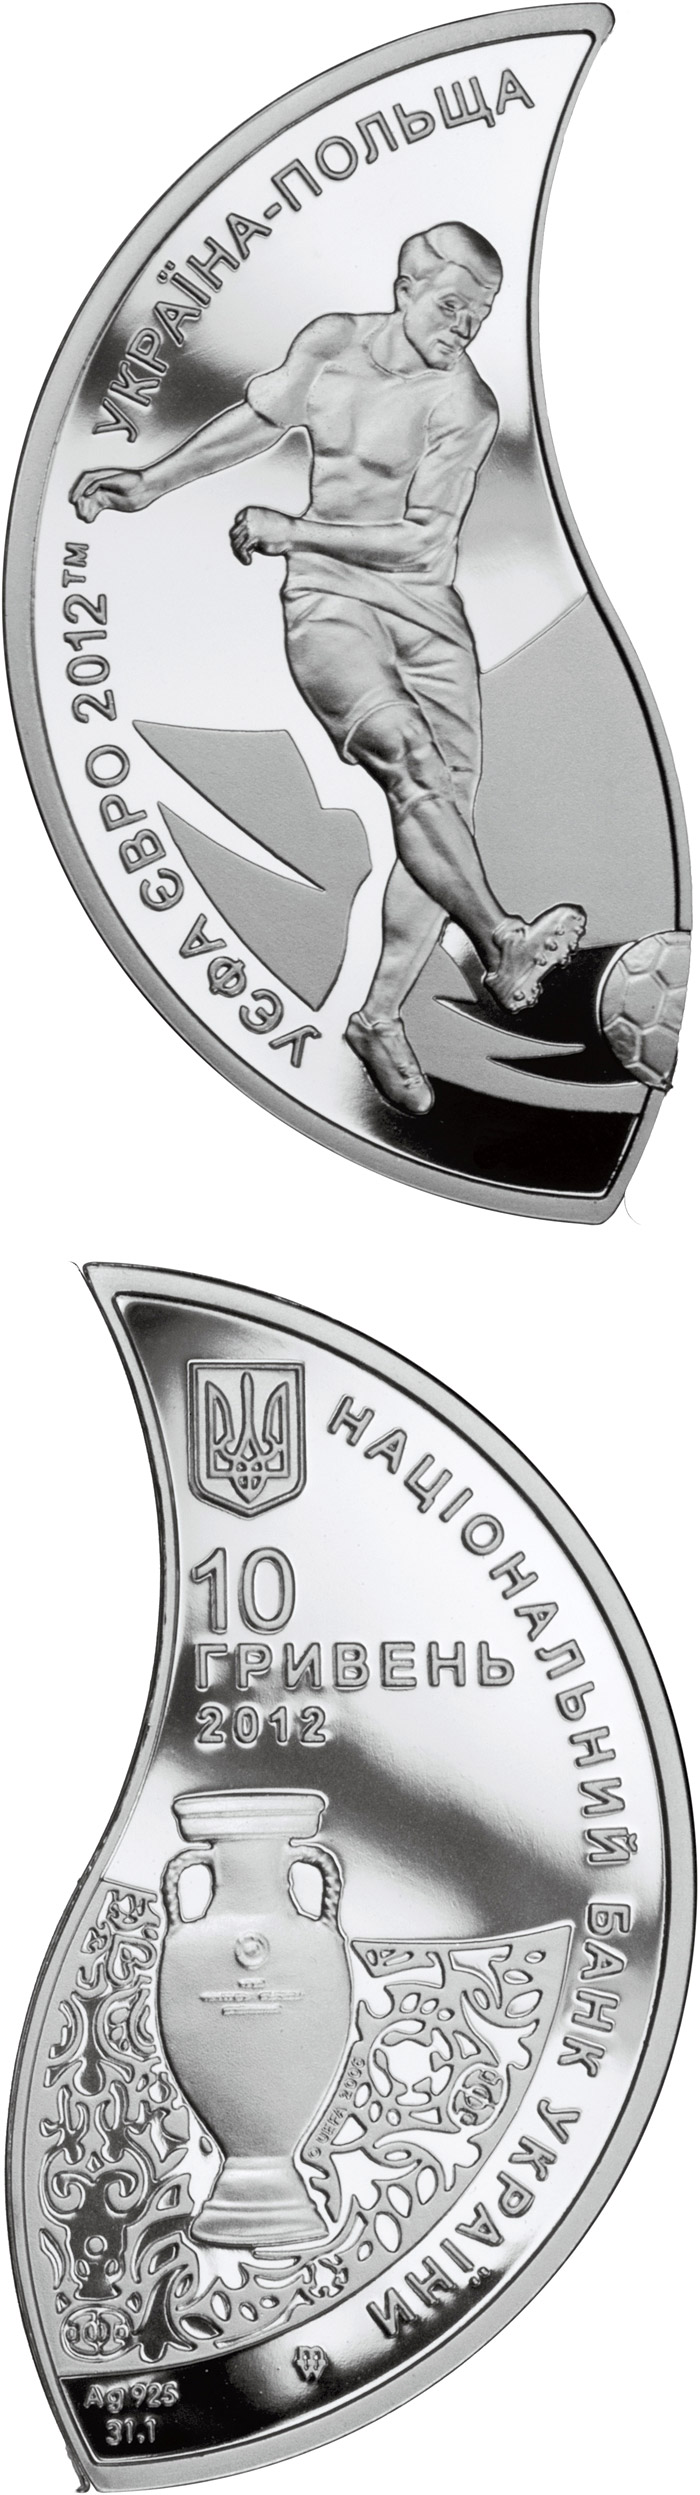 Image of a coin 10 hryven  | Ukraine | UEFA EURO 2012 | 2012